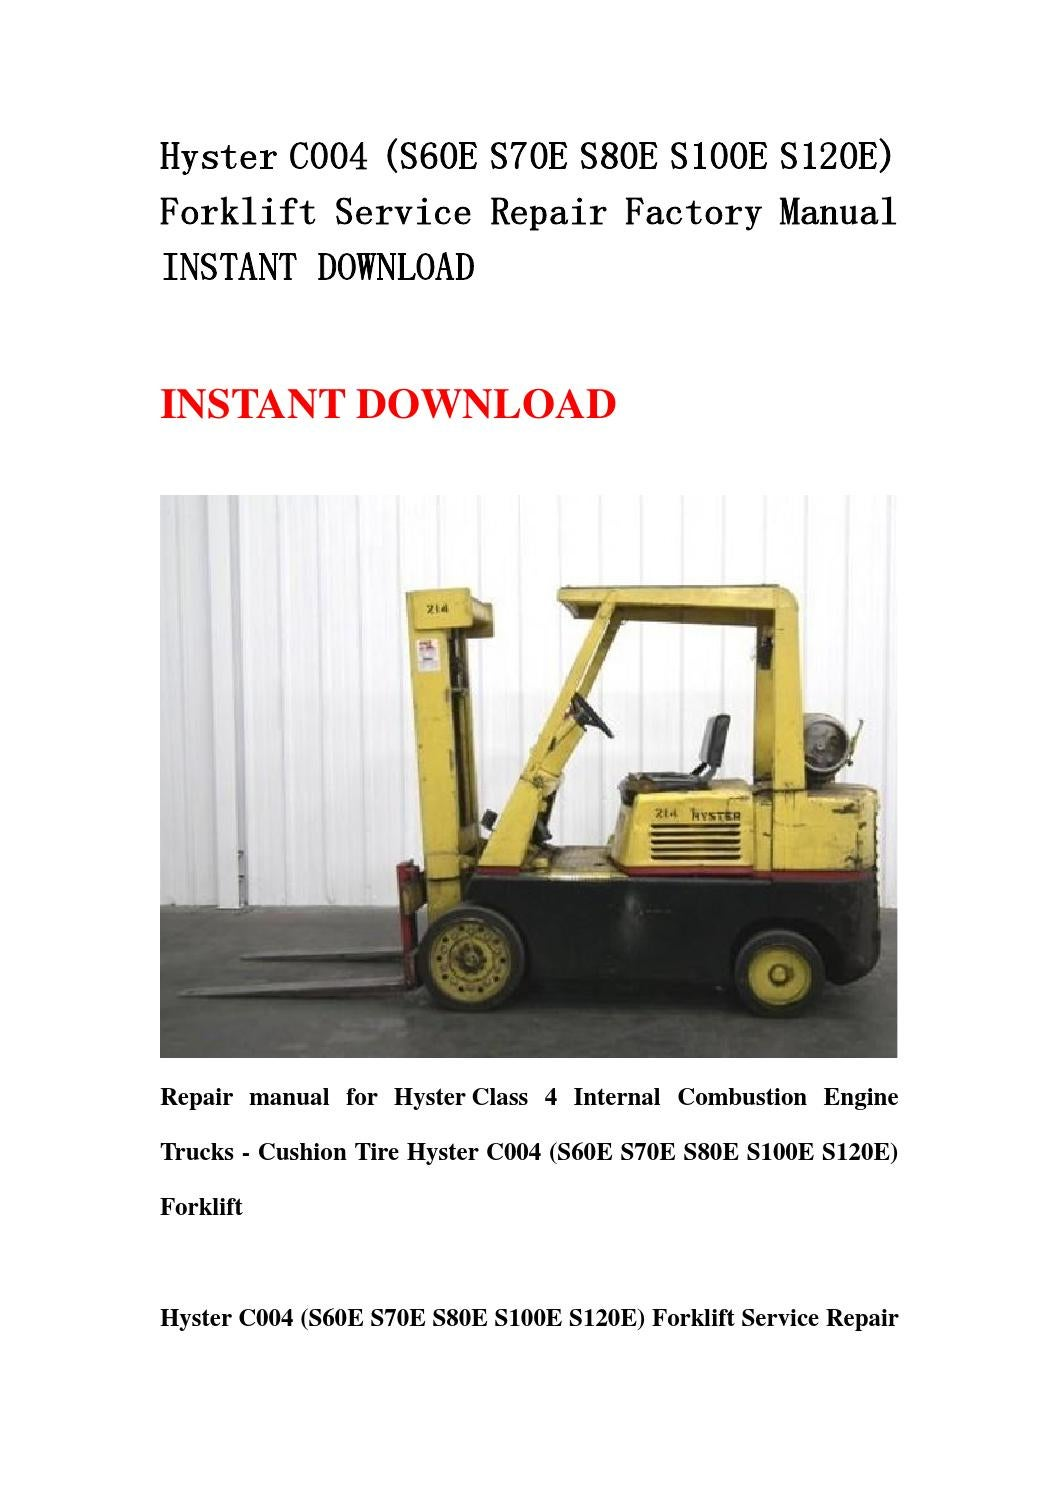 Hyster C004 S60e S70e S80e S100e S120e Forklift Service Repair 30 Wiring Diagram Factory Manual Instant Download By Hdfhgsbefnsen Issuu